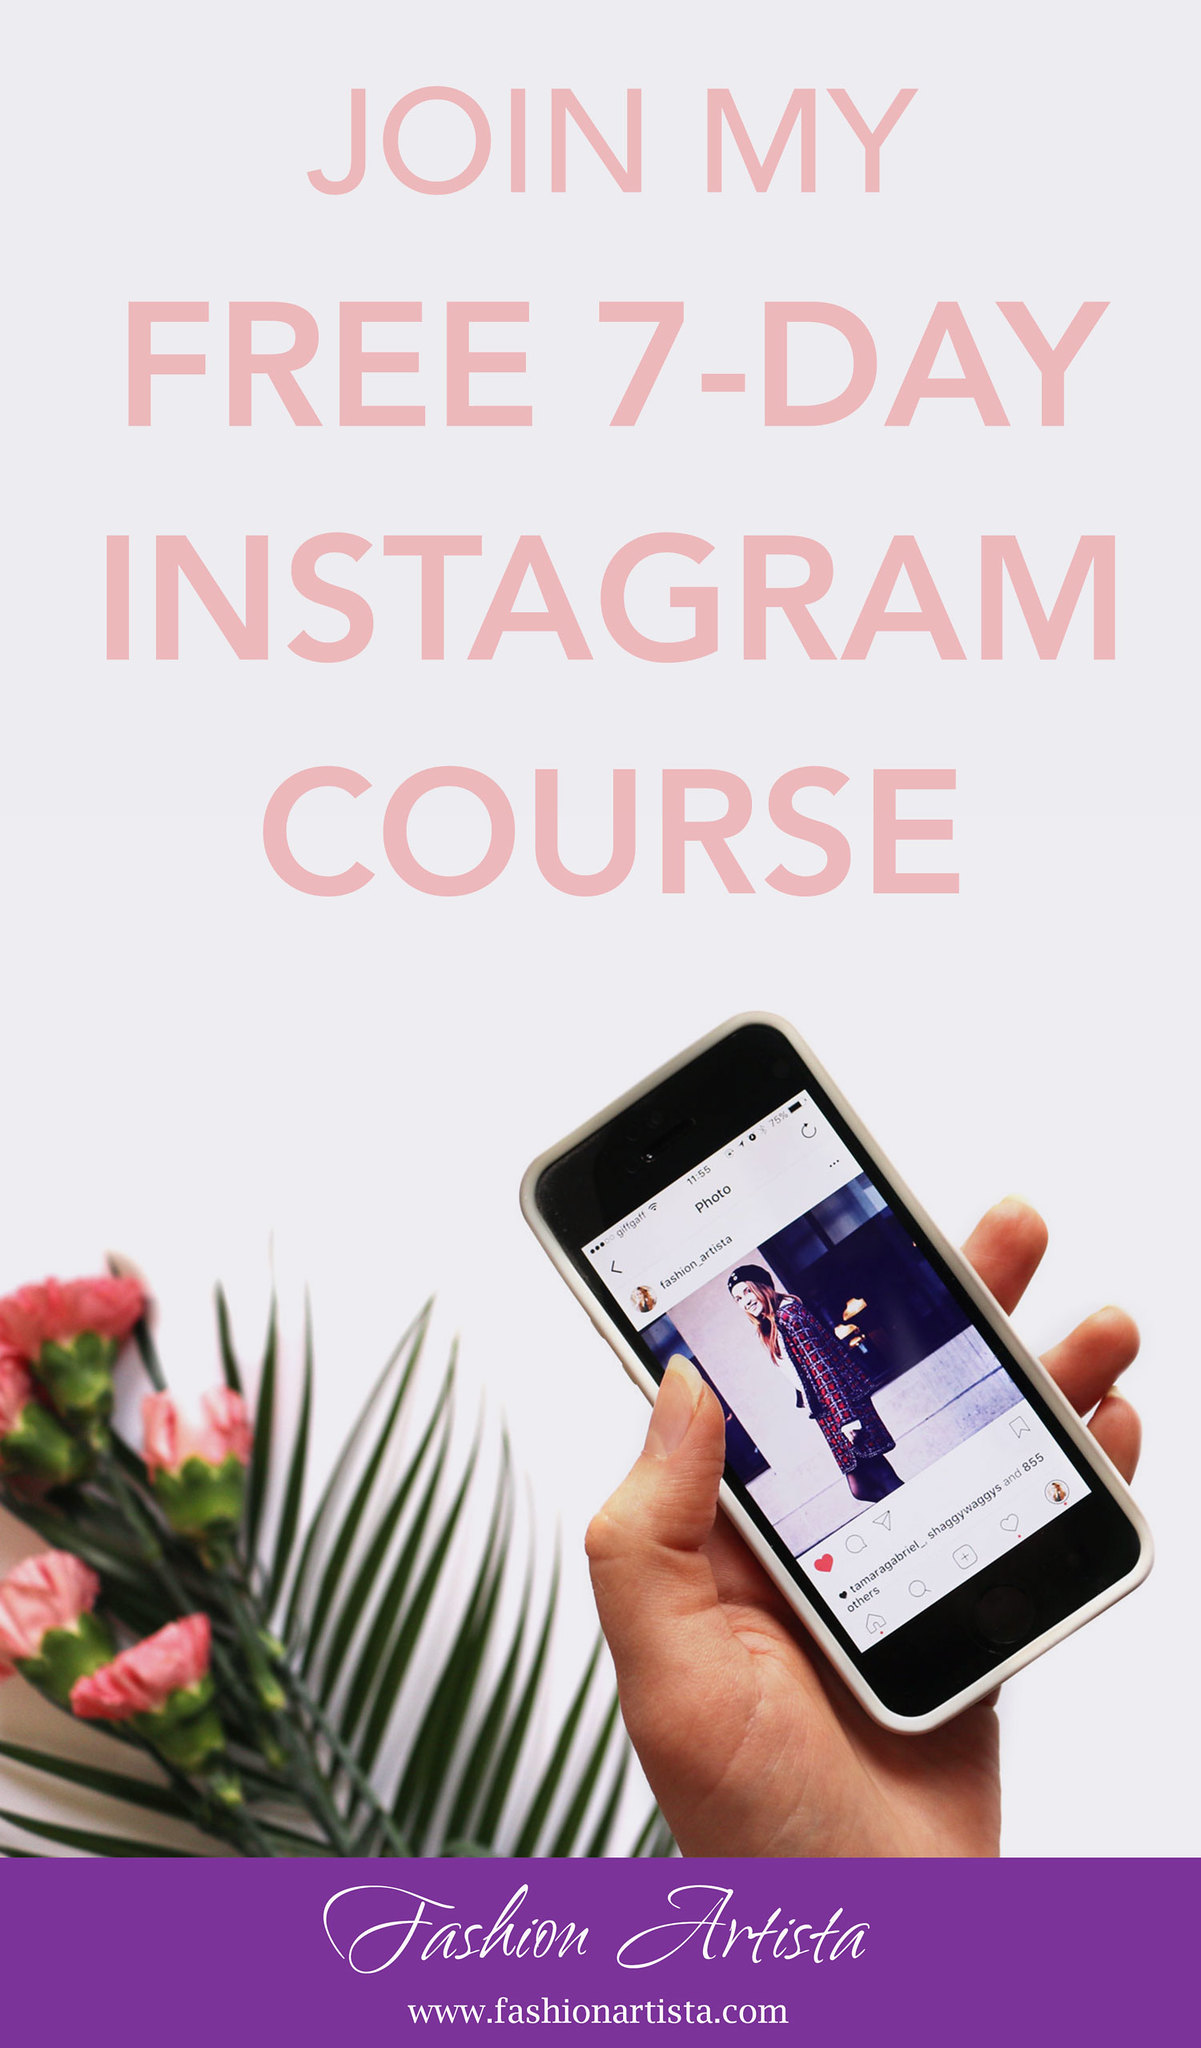 JOIN MY FREE INSTSAGRAM COURSE - www.fashionartista.com